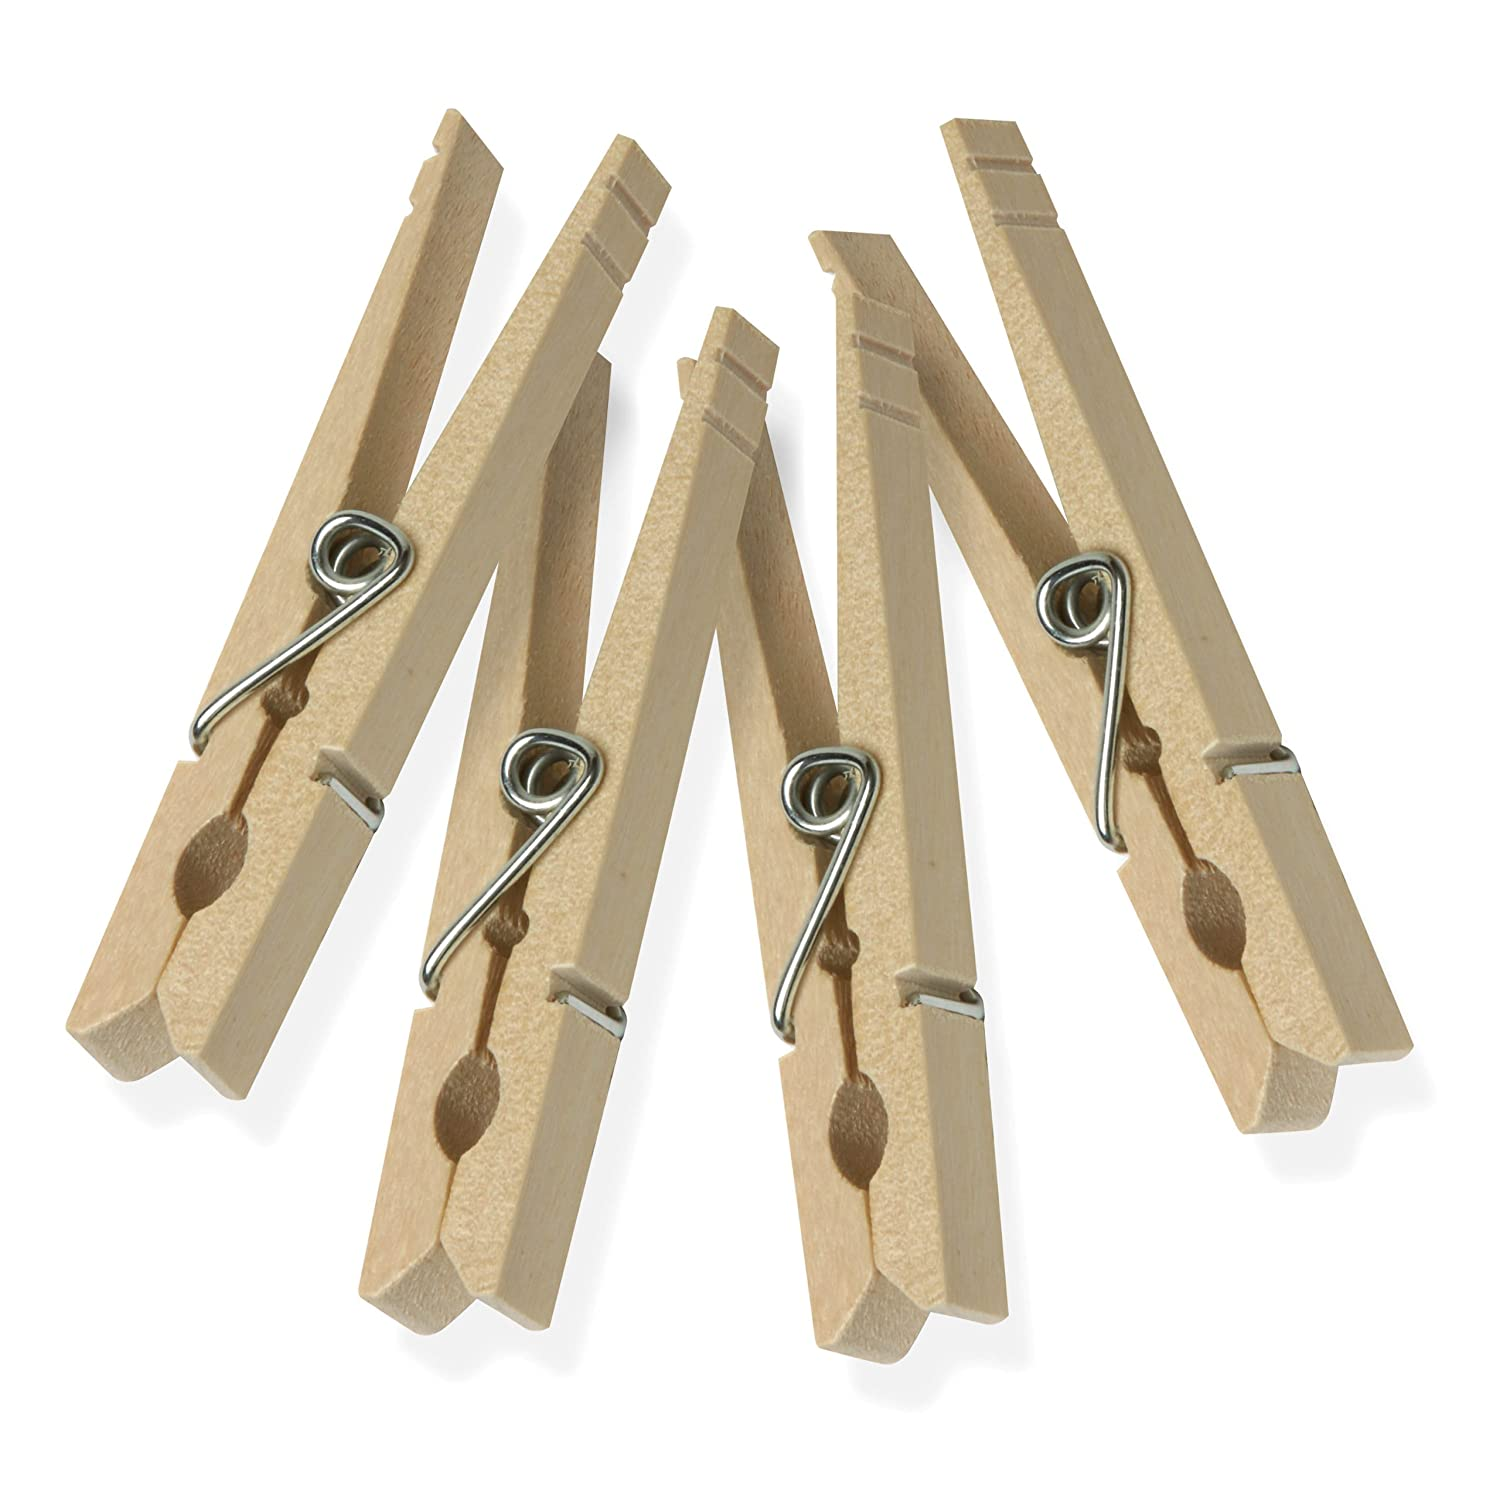 Image: Honey-Can-Do Clothes Pins Traditional Wood with Spring 50-Pack Wooden Clothespins - Love drying your clothes naturally!